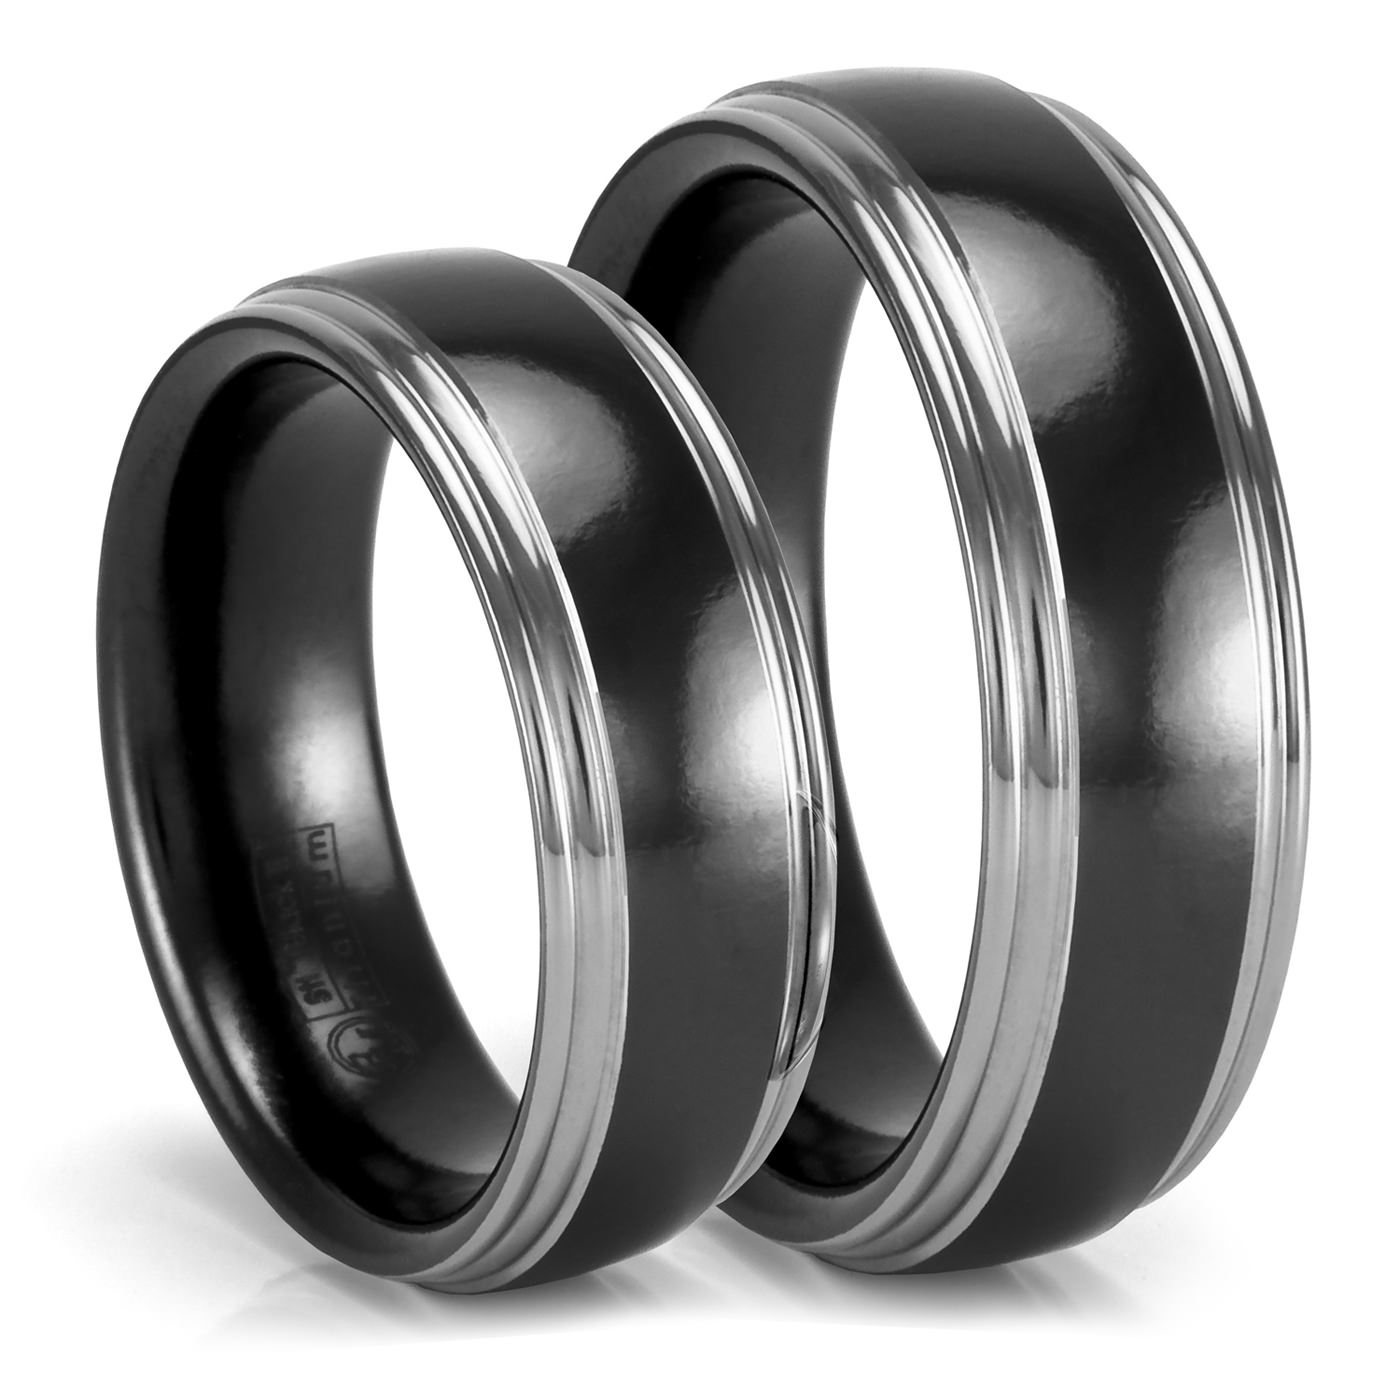 ring wedding black band zoom finish hammer newport tungsten carbide rings loading